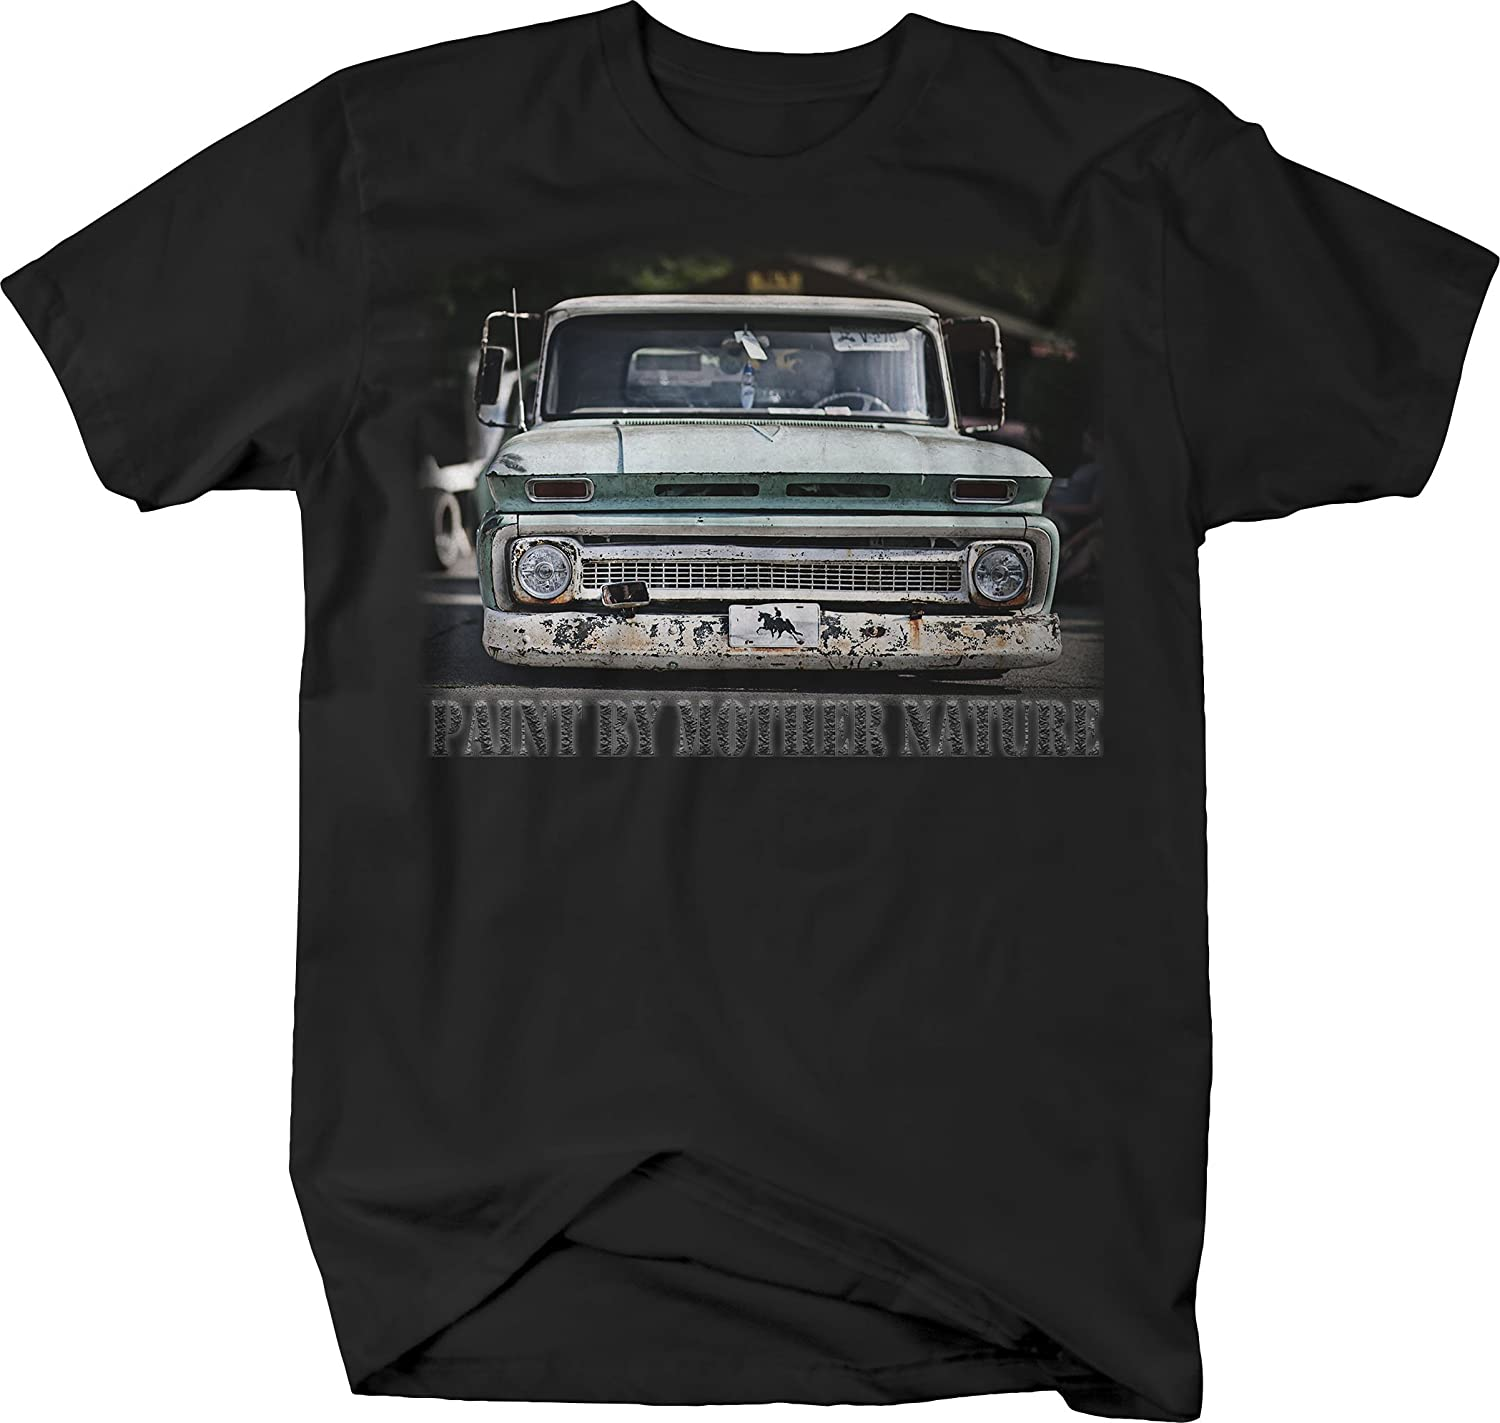 Paint by Mother Nature American Farm Truck Patina Lowered Tshirt